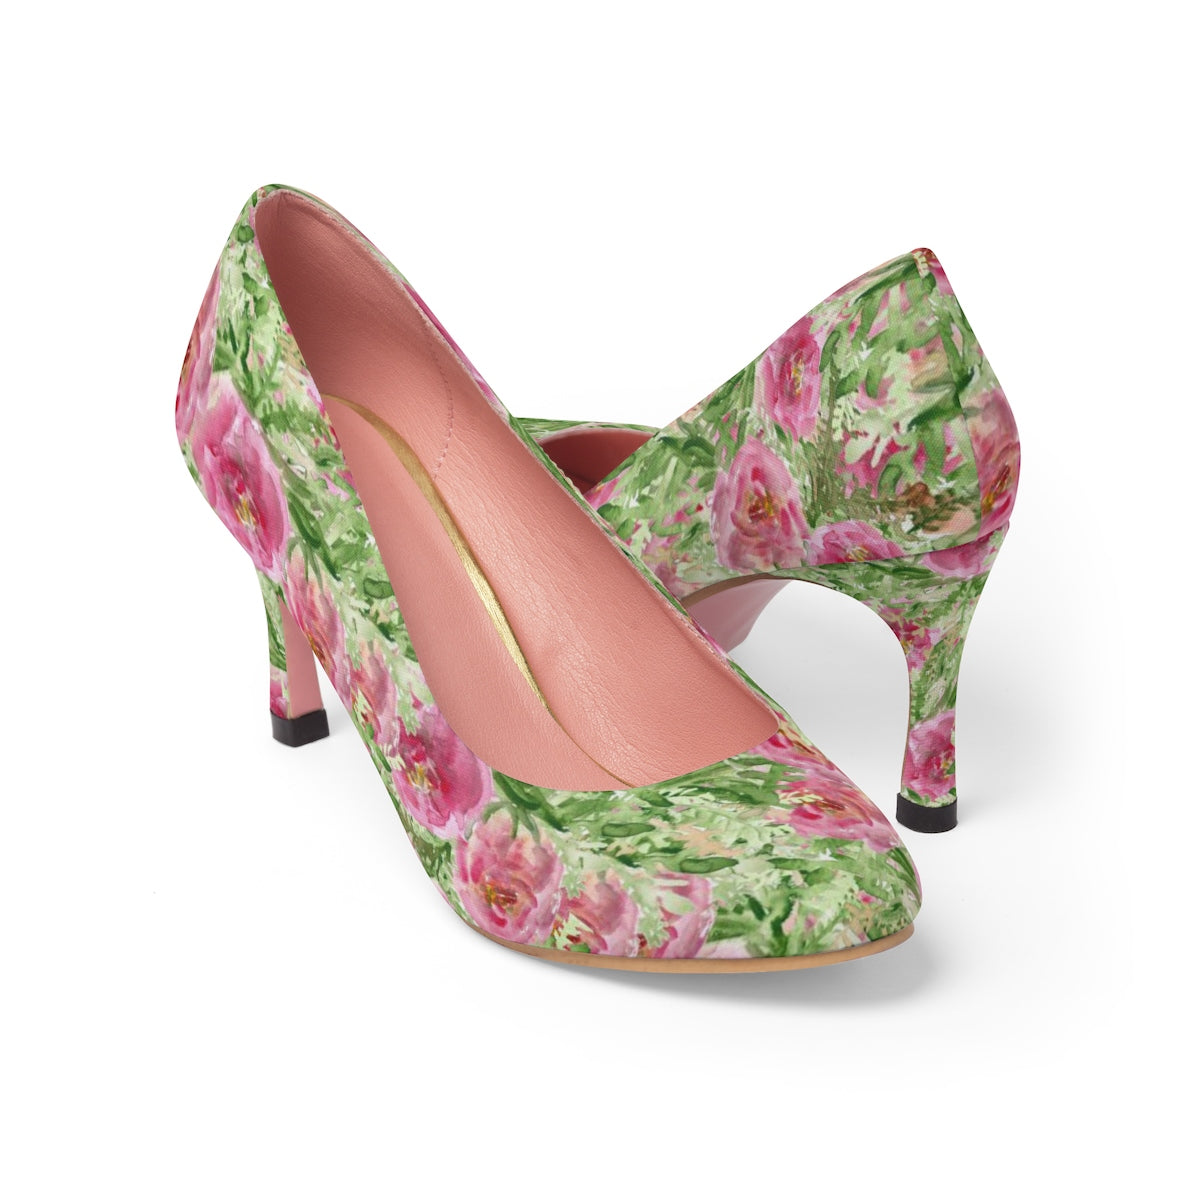 "Garden Rose Bush Flower Japanese Floral Print Women's 3"" High Heels (US Size: 5-11)-3 inch Heels-US 7-Heidi Kimura Art LLC Garden Rose Floral Heels, Designer Best Feminine Elegant Rose Bush Flower Japanese Floral Print Women's 3"" High Heels (US Size: 5-11)"